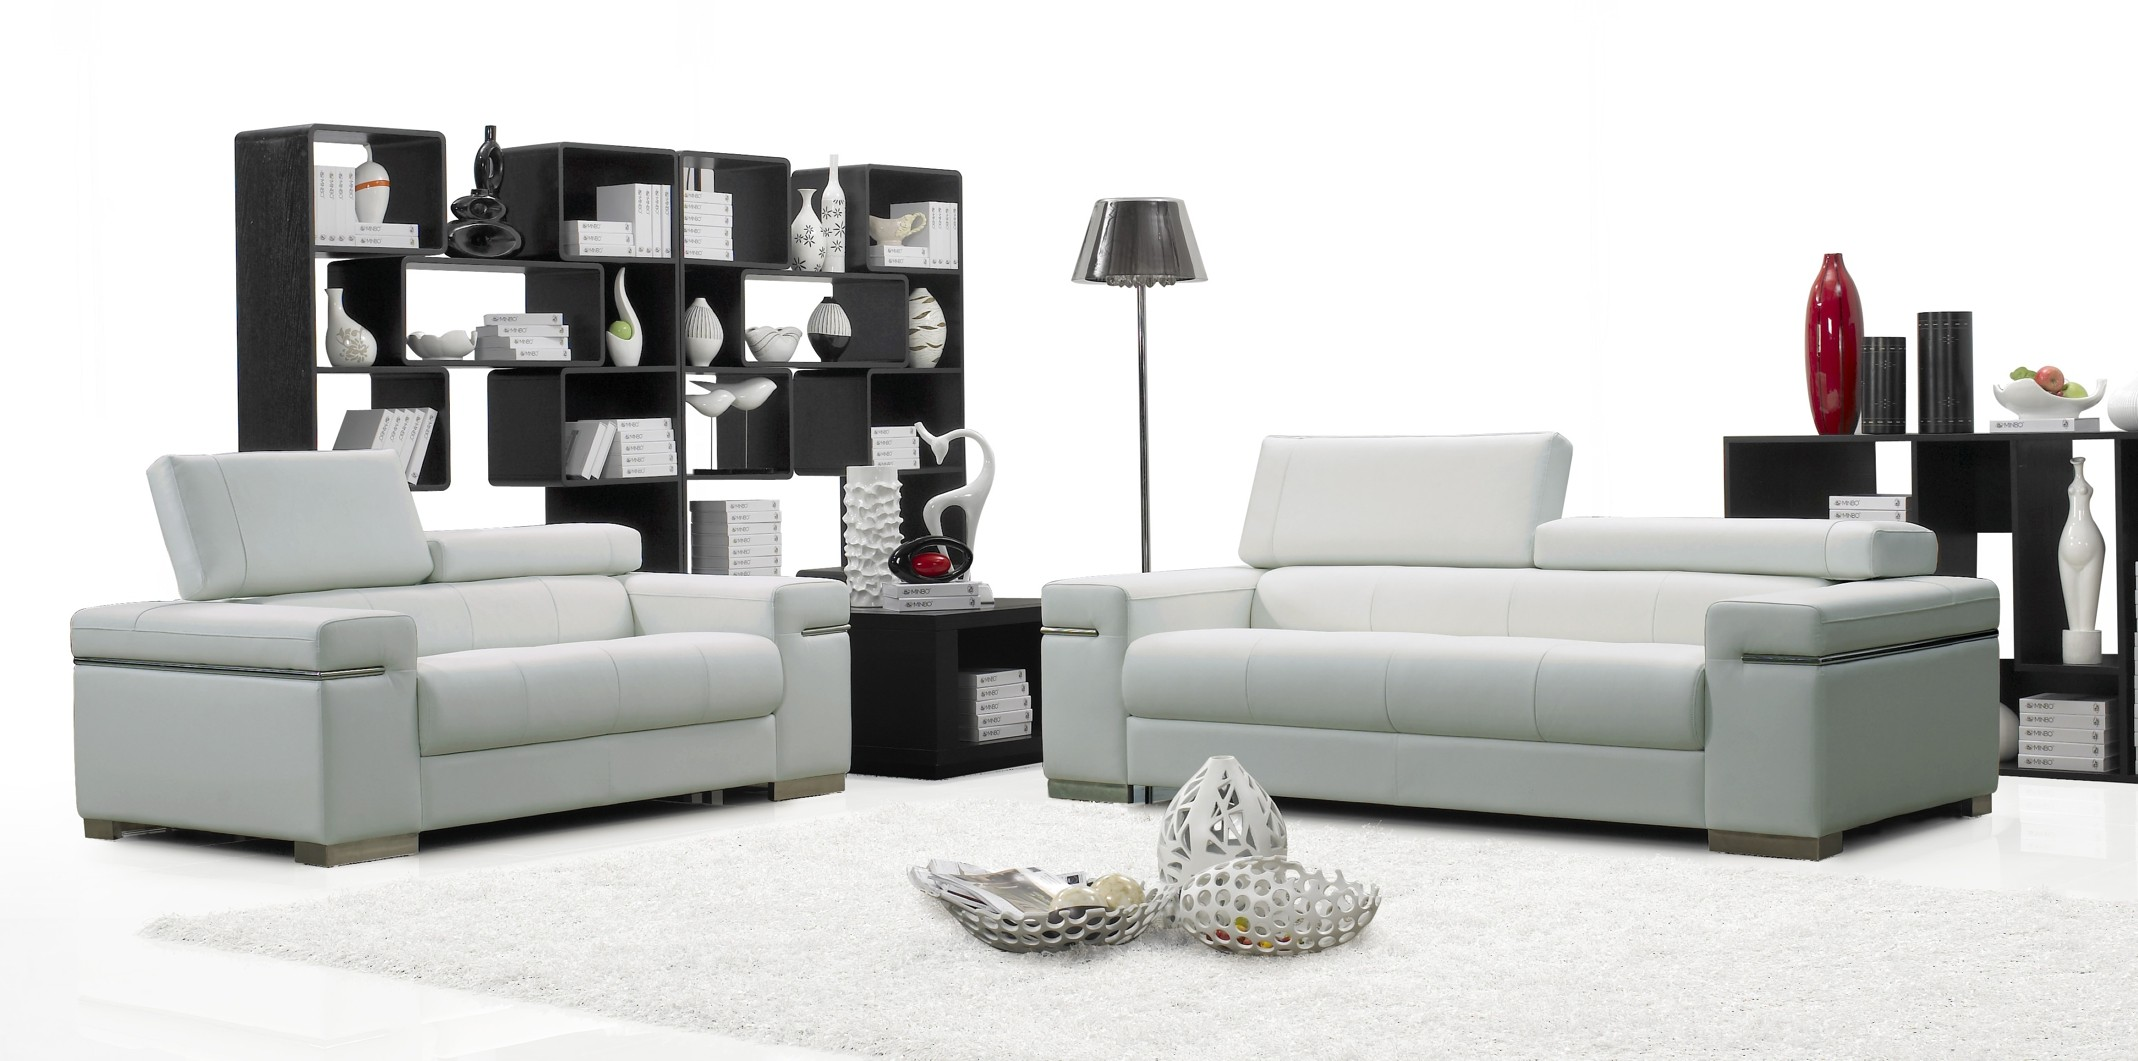 25 latest sofa set designs for living room furniture ideas for Contemporary furniture design